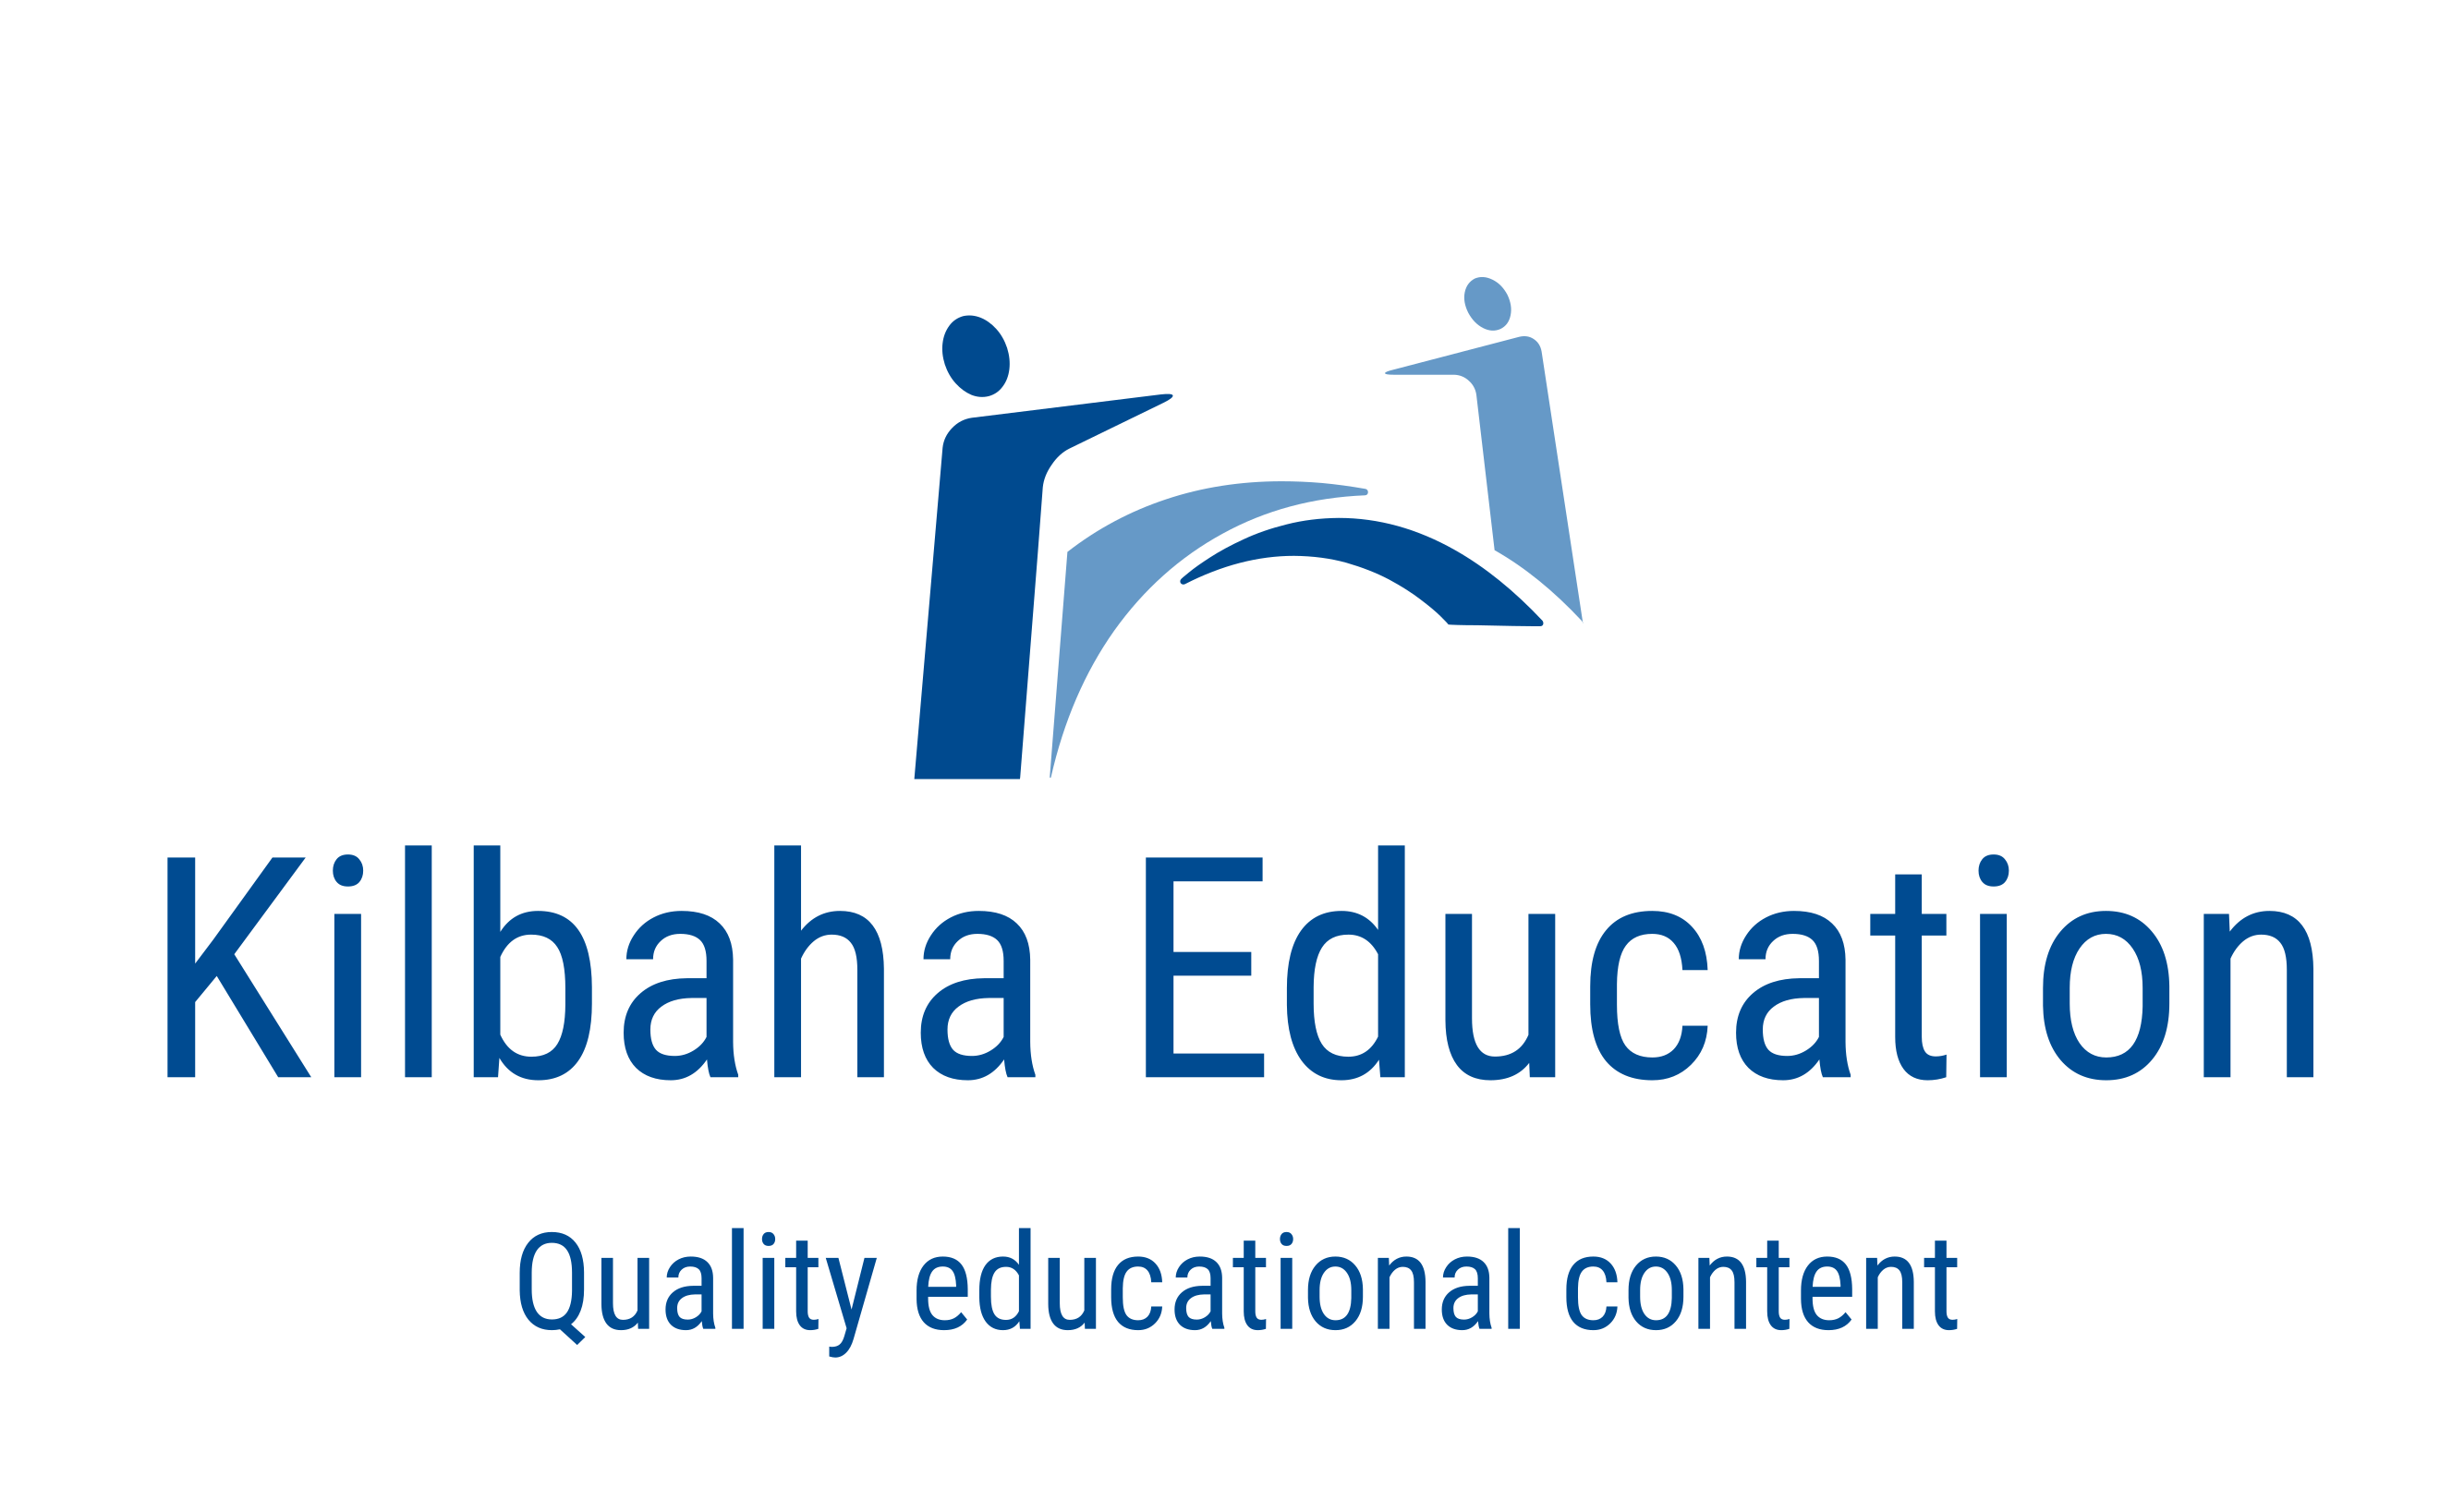 Kilbaha Education